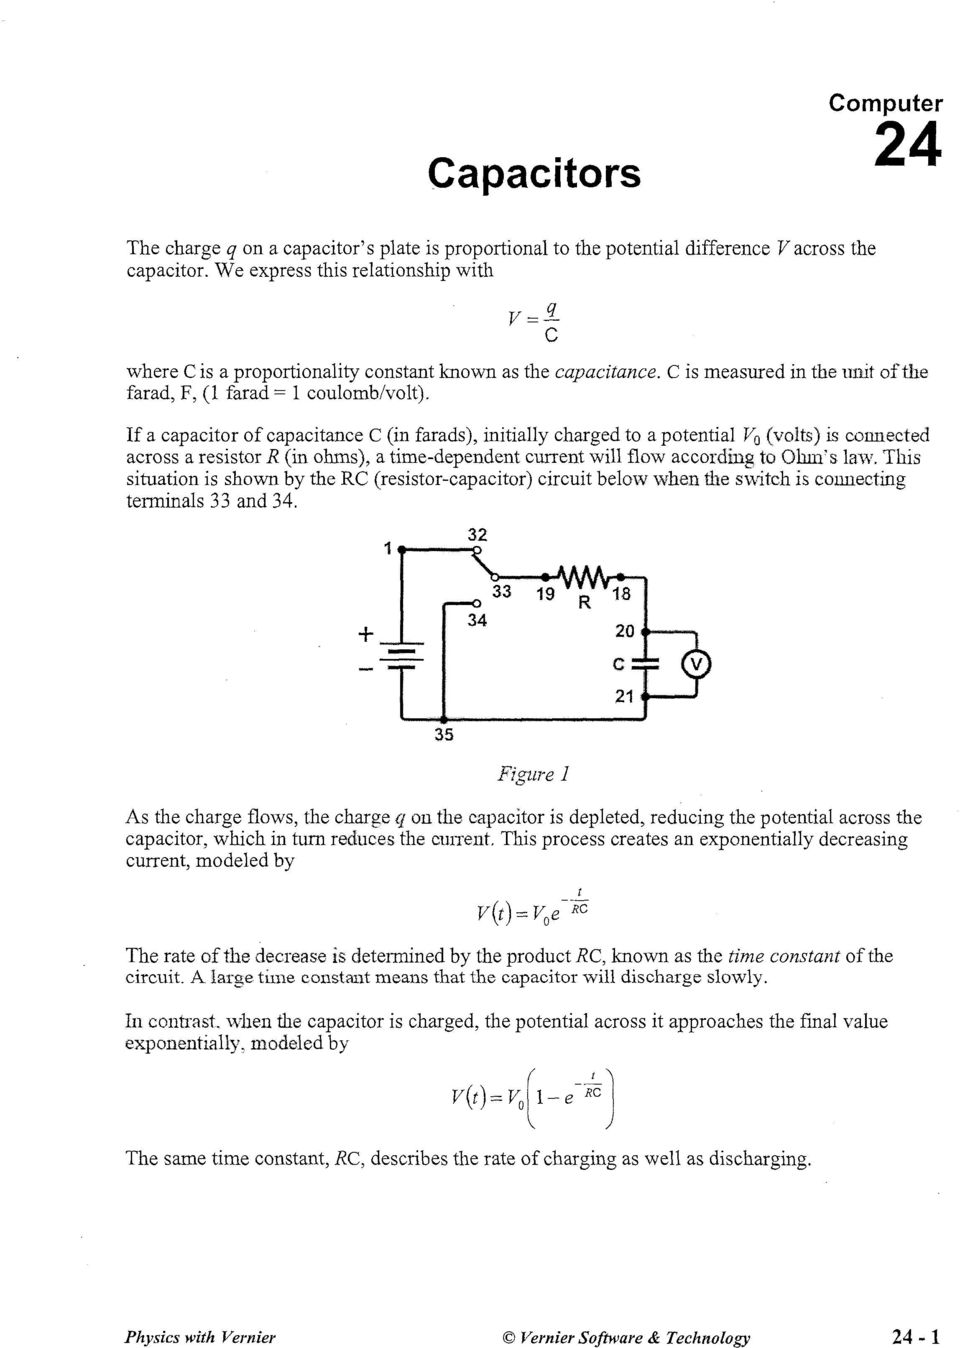 Capacitors Vf Figure 1 Pdf The Circuit Below Along With Current Flowing And Potential If A Capacitor Of Capacitance C In Farads Initially Charged To